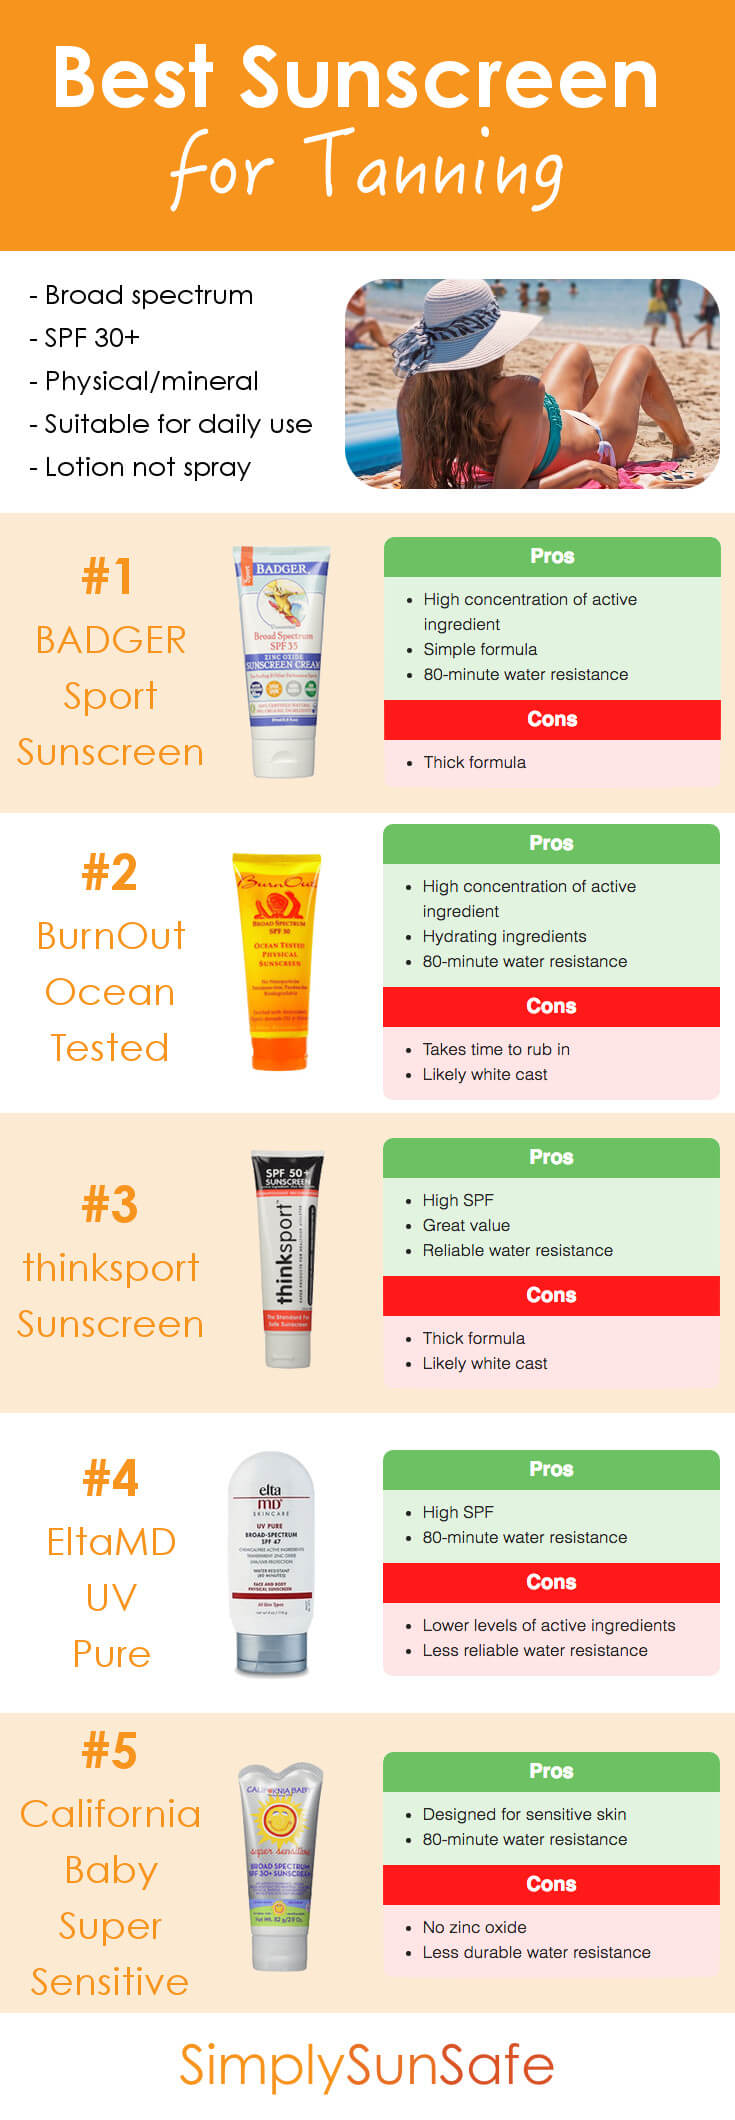 Best Sunscreen for Tanning Pinterest